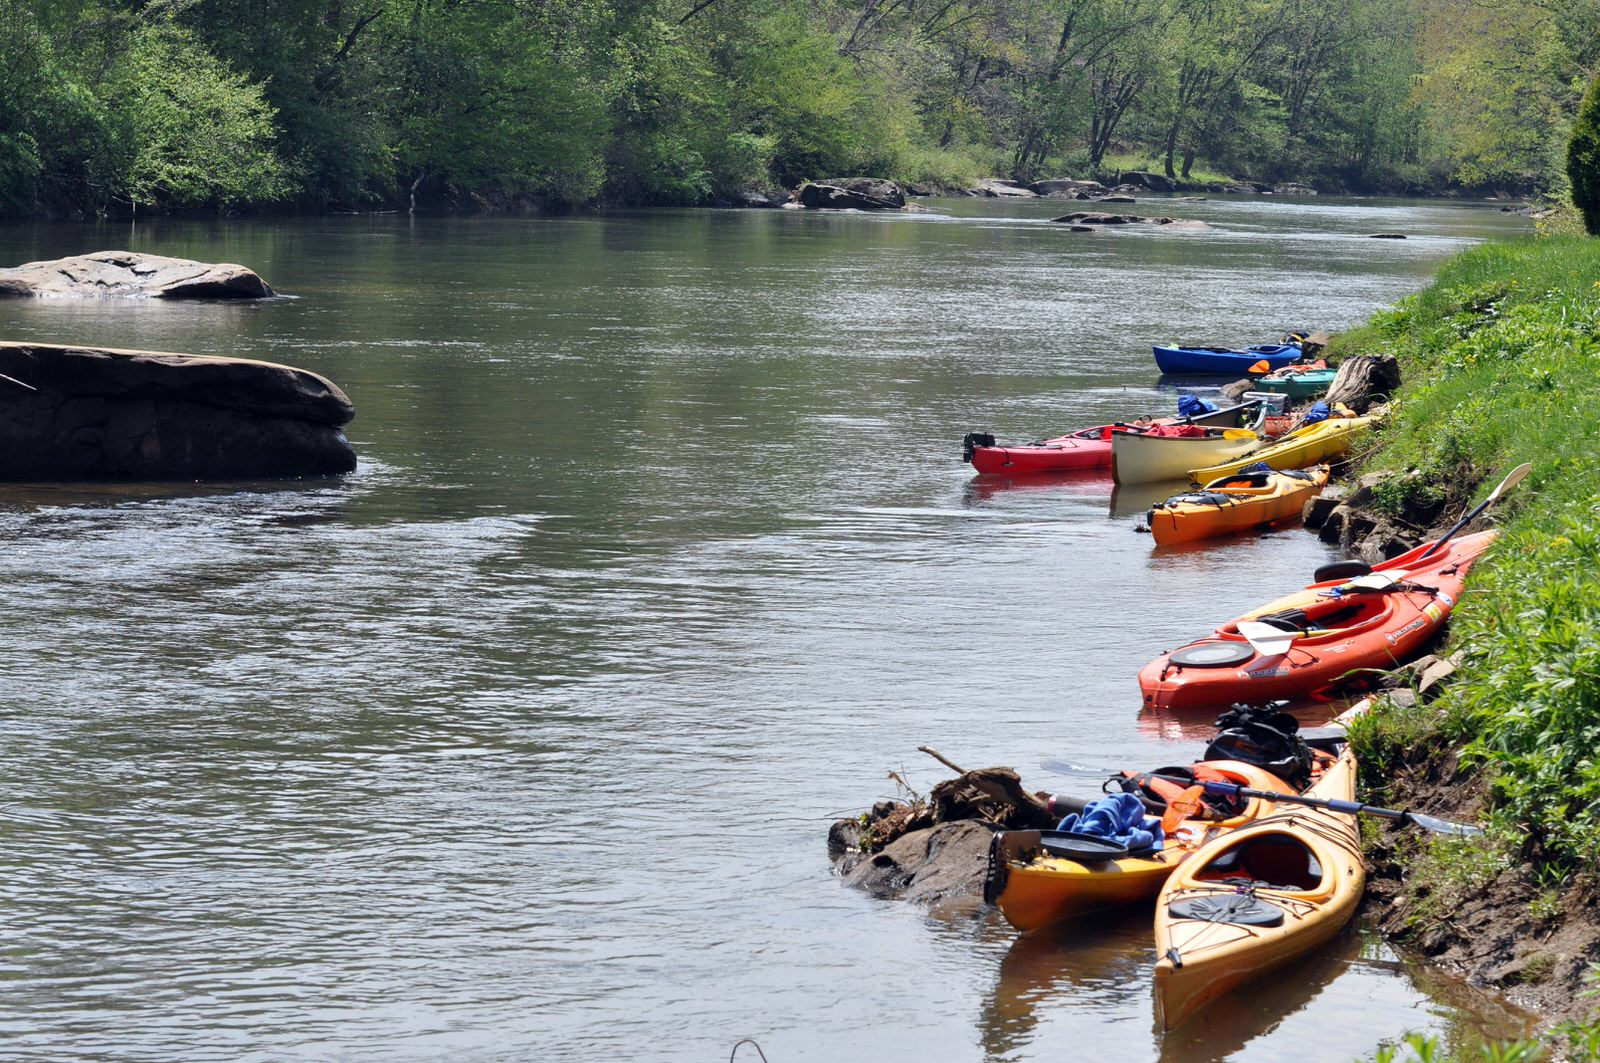 photo: Kayaking on the river near McGees Mills. Photo by Sherri Clukey.